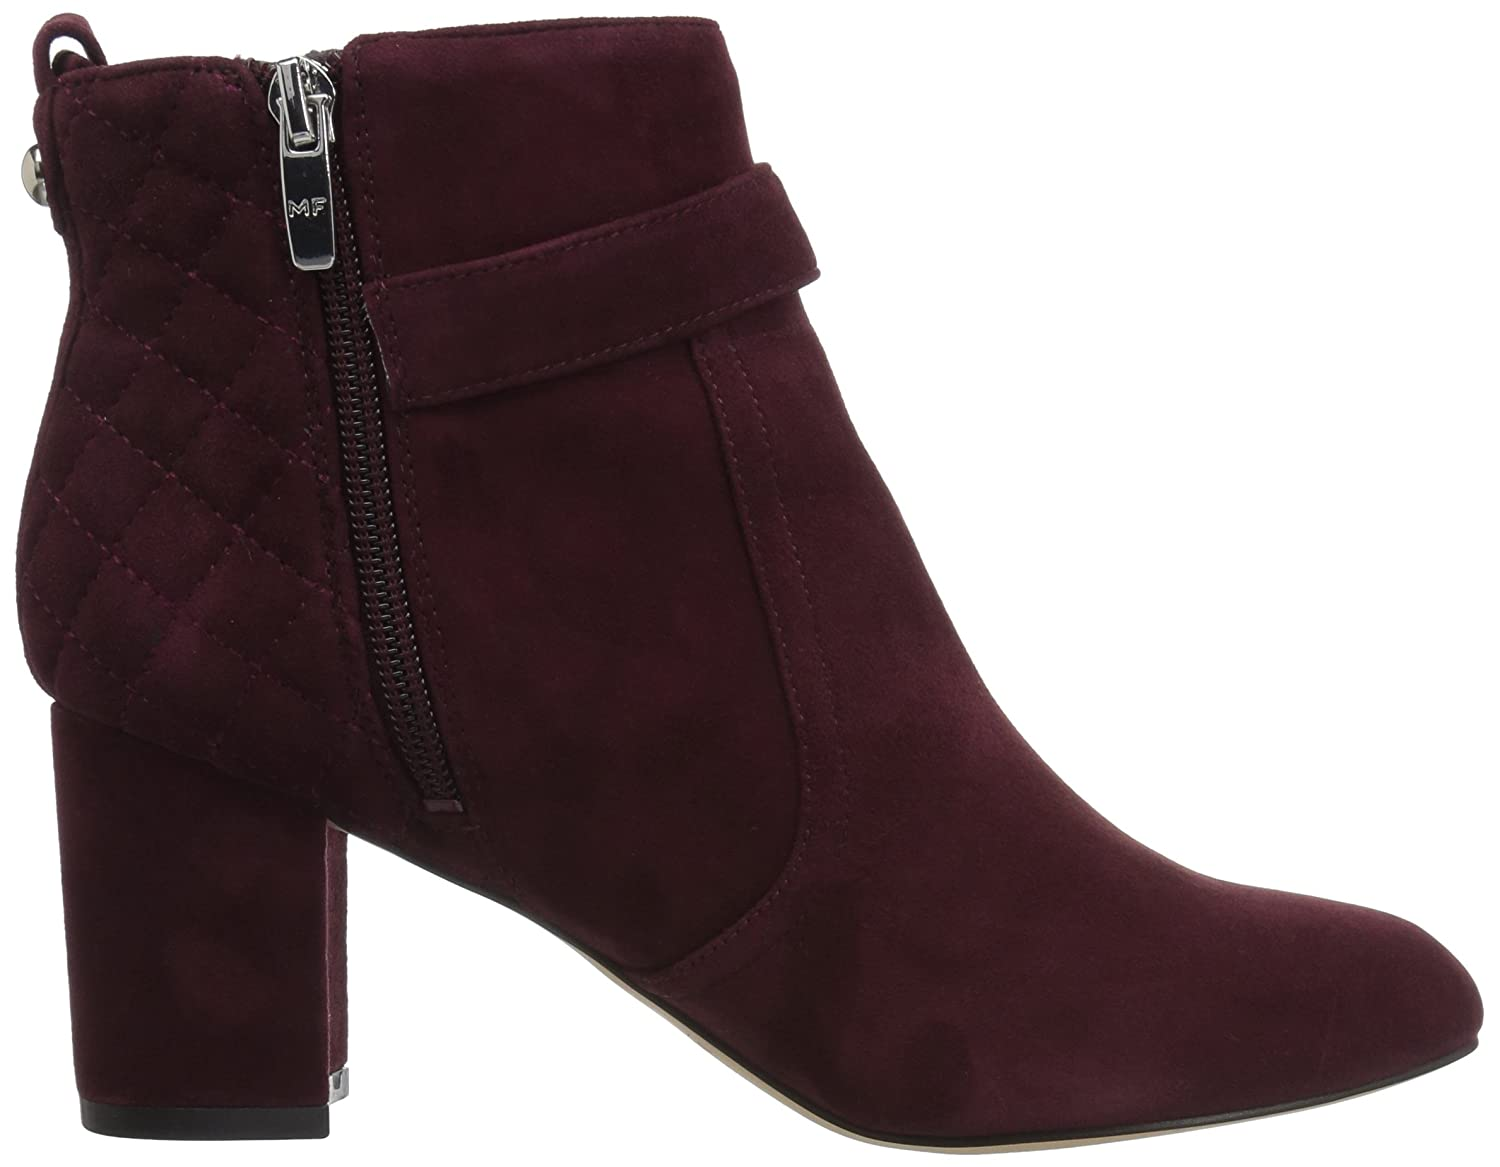 Marc Fisher Women's Weity Ankle Boot B0725N52H8 9 B(M) US|Burgundy